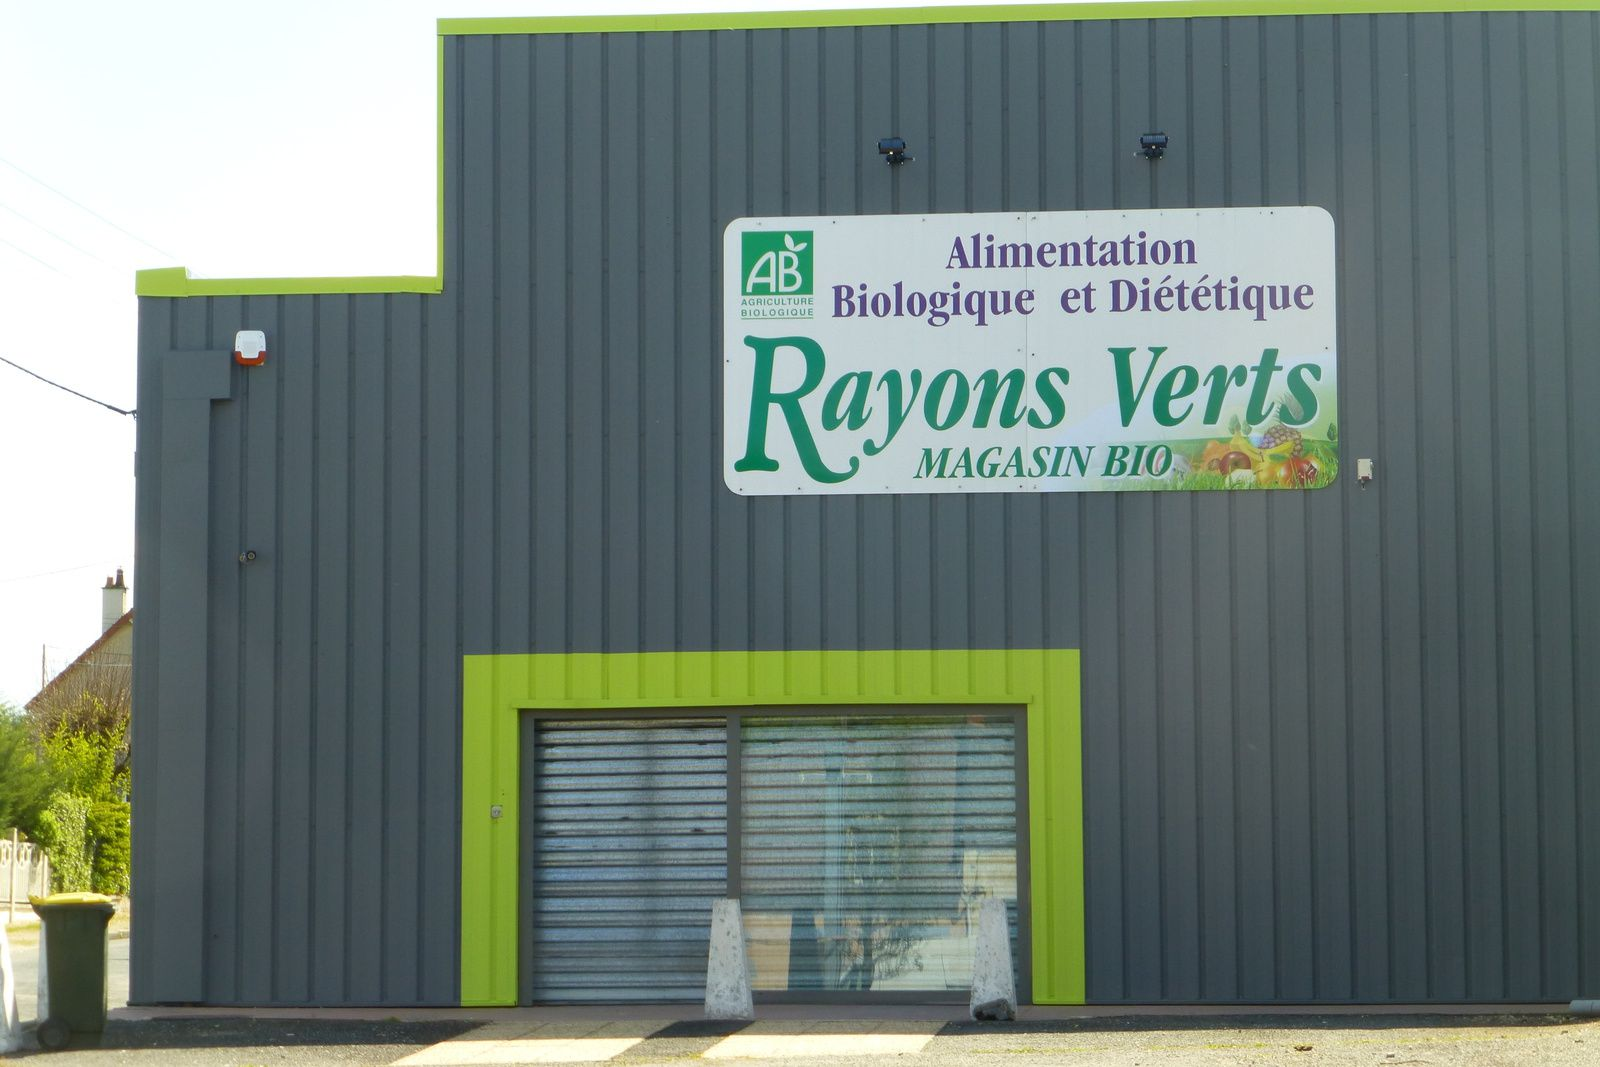 Le magasin Rayons verts s'installe avenue du 14 juillet